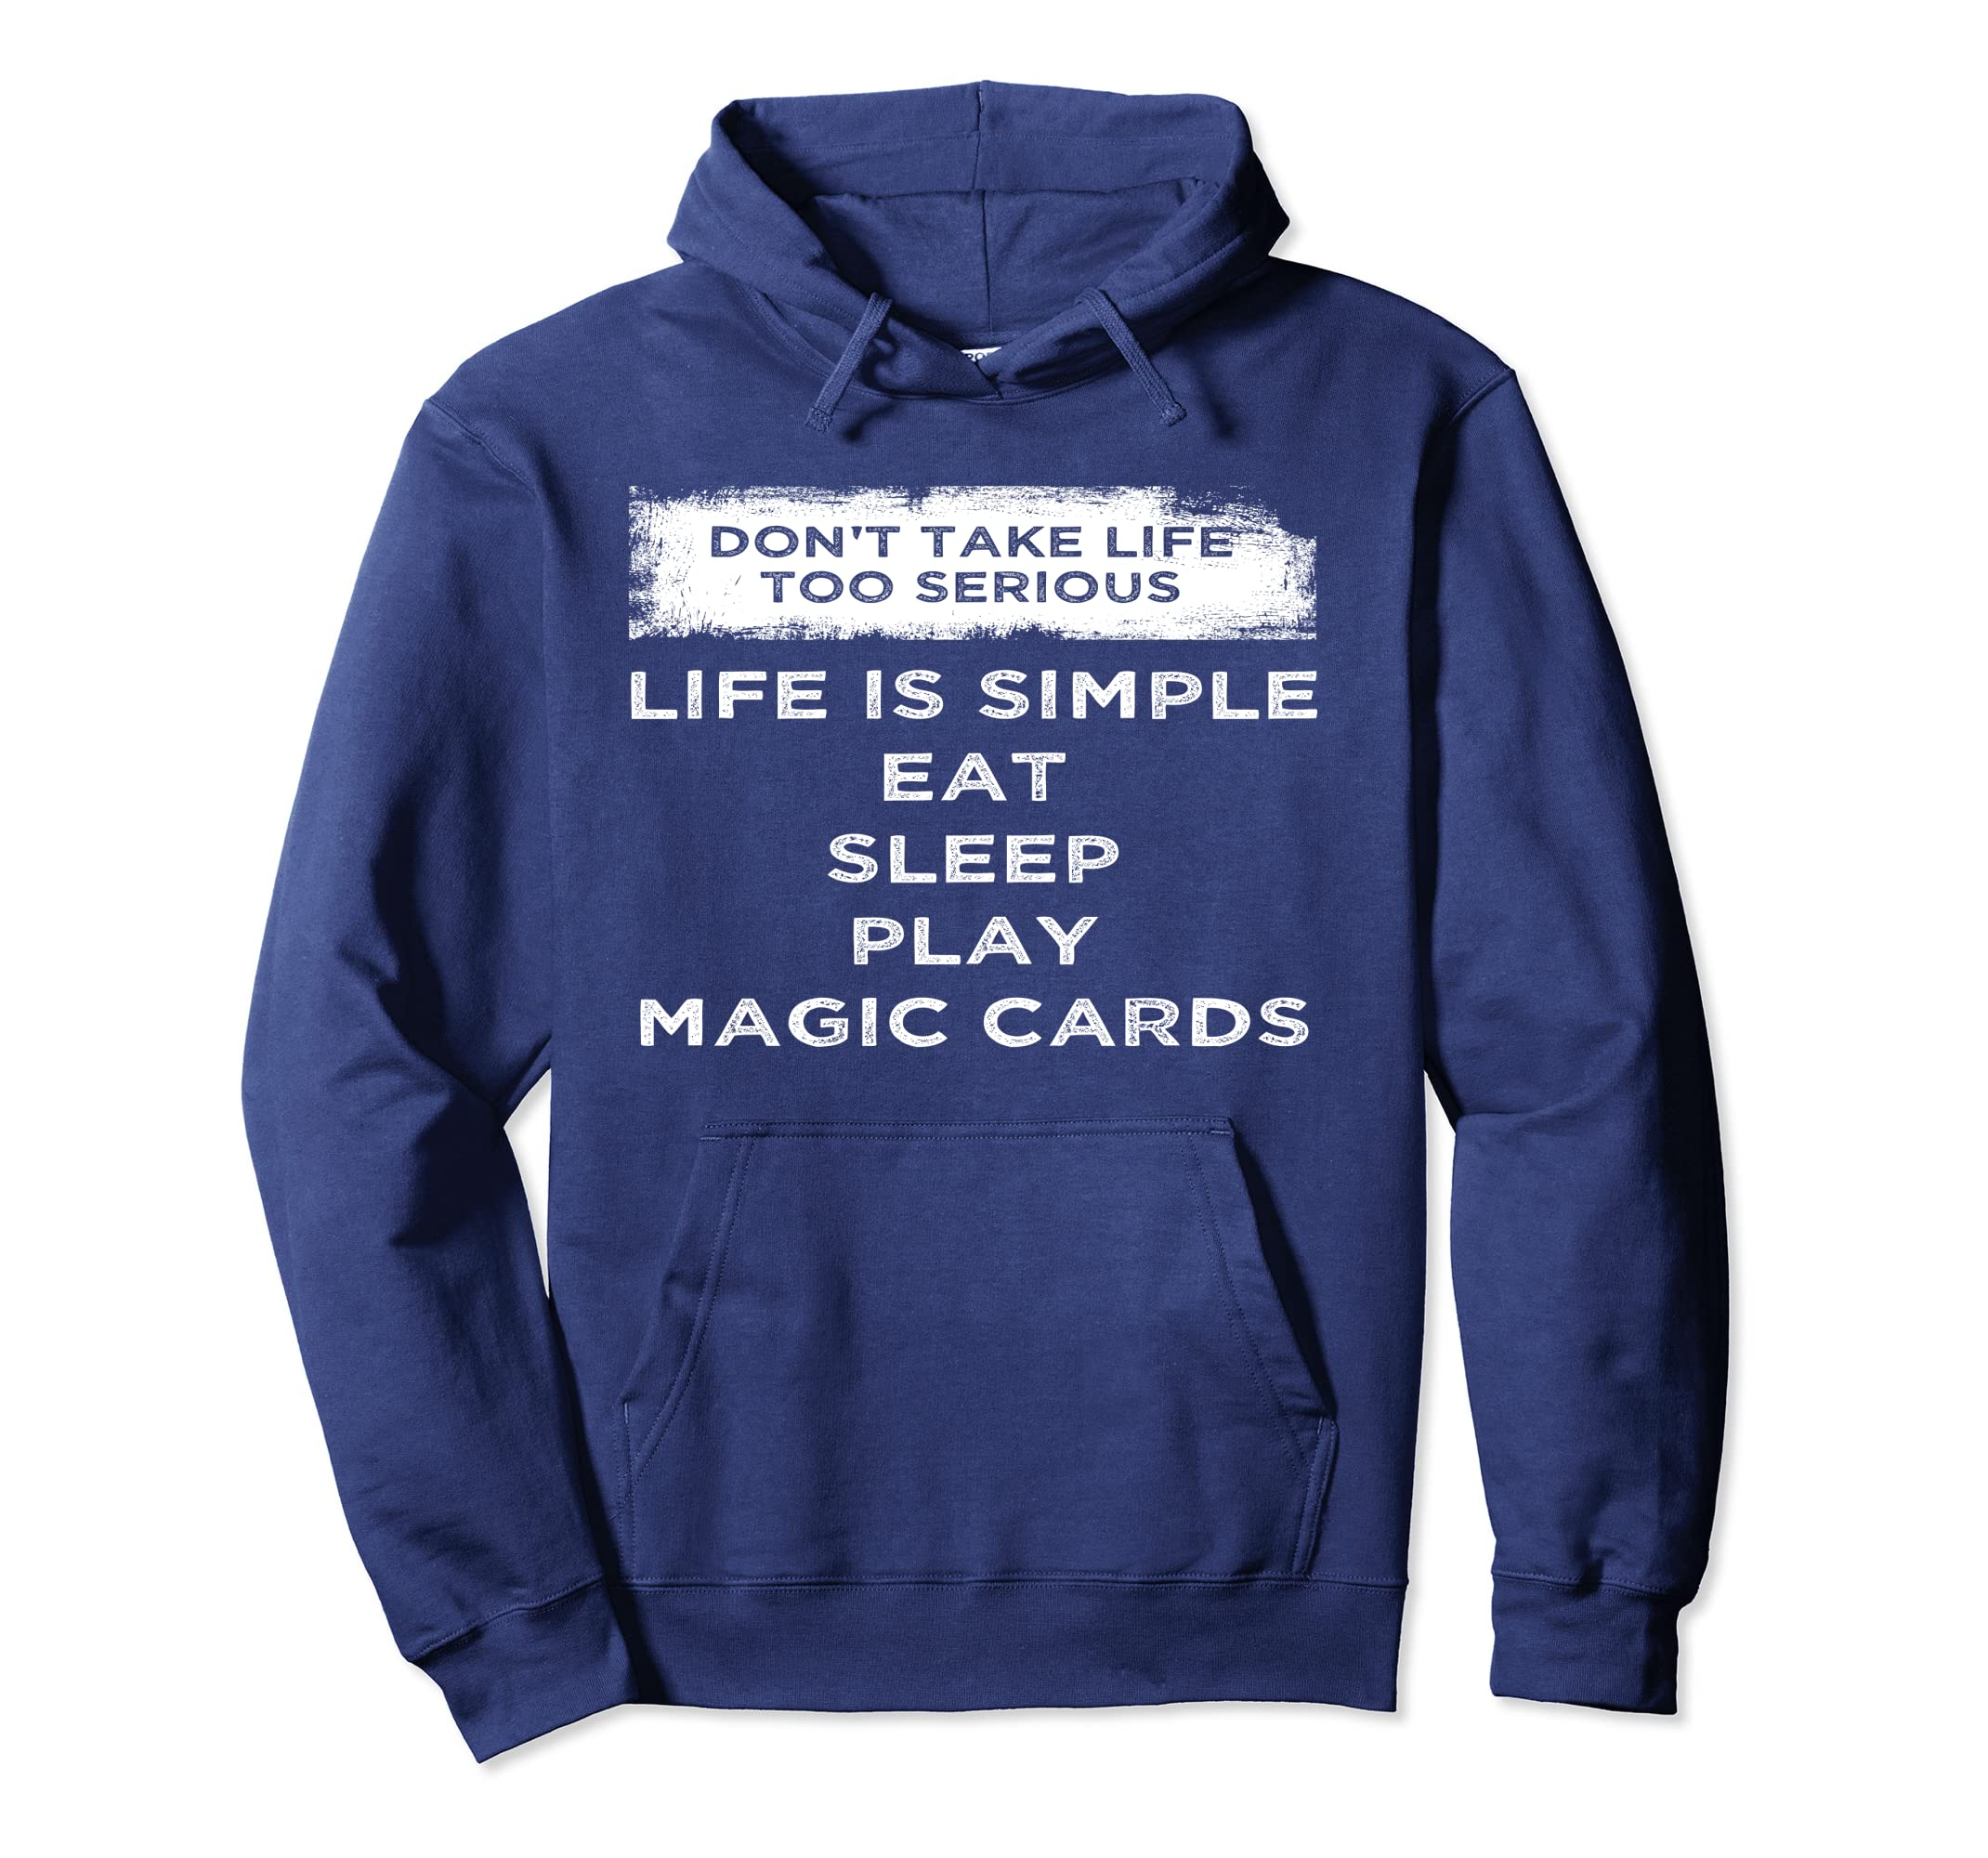 bb85decaa Amazon.com: Don't Take Life Serious Life Is Simple Magic Cards Hoodie:  Clothing